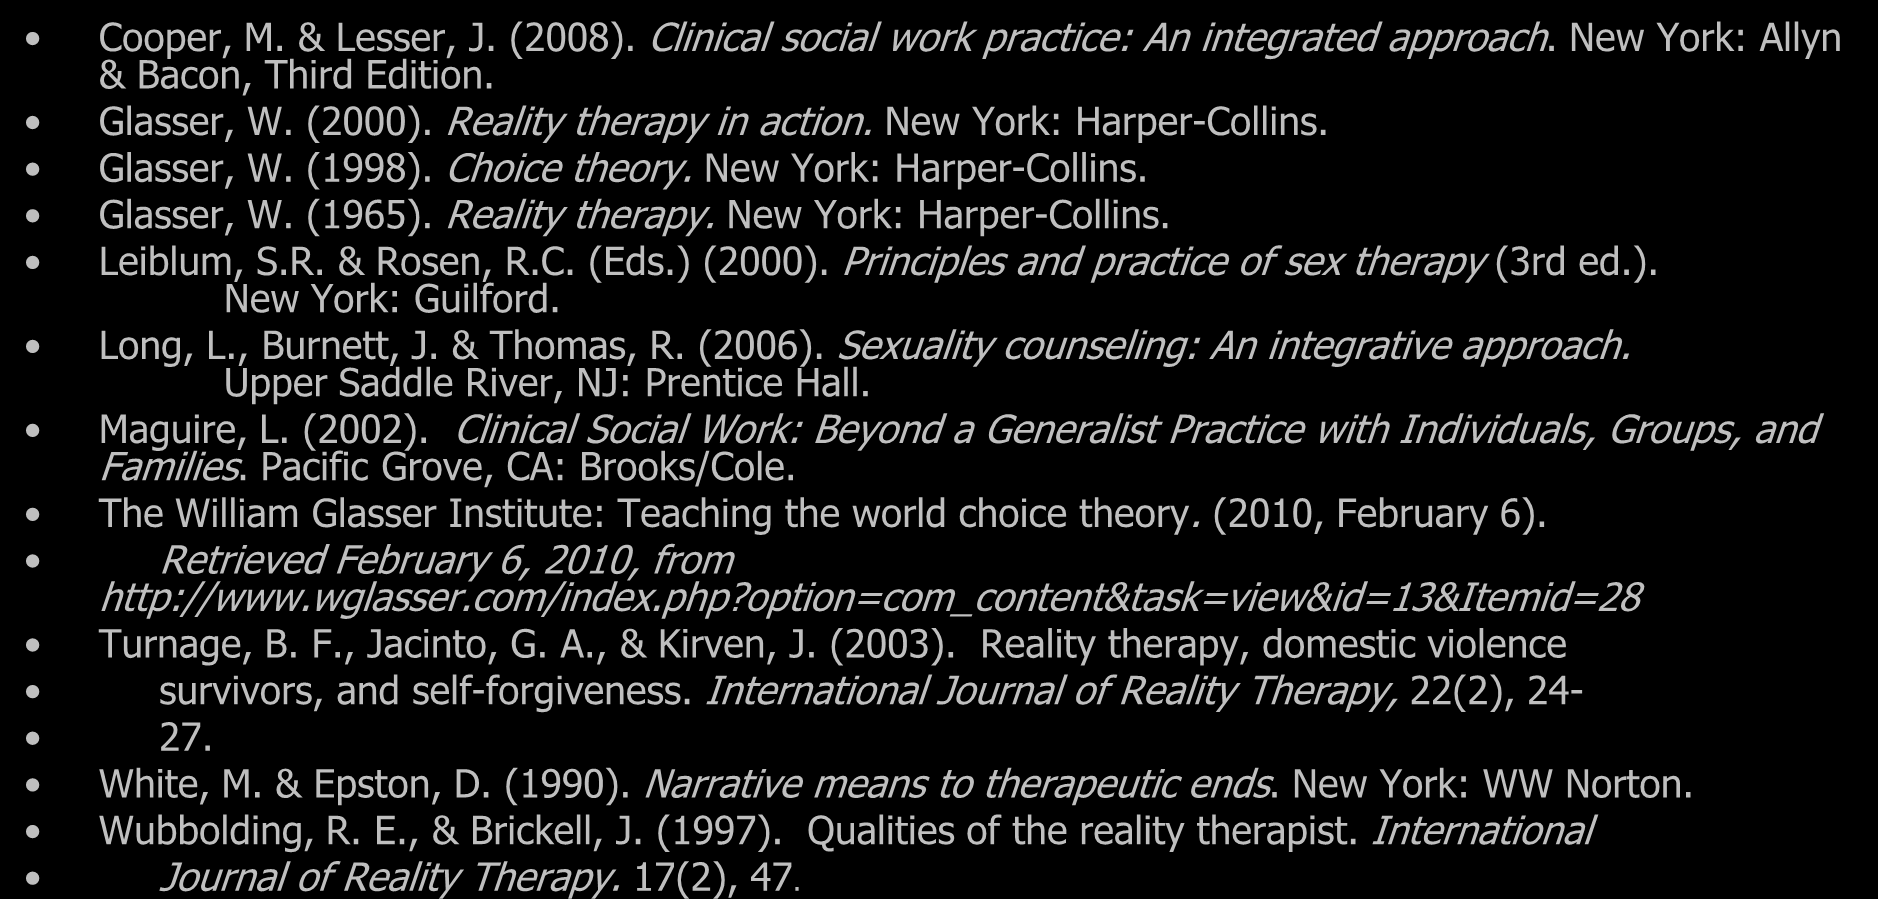 References Cooper, M. & Lesser, J. (2008). Clinical social work practice: An integrated approach. New York: Allyn & Bacon, Third Edition. Glasser, W. (2000). Reality therapy in action.